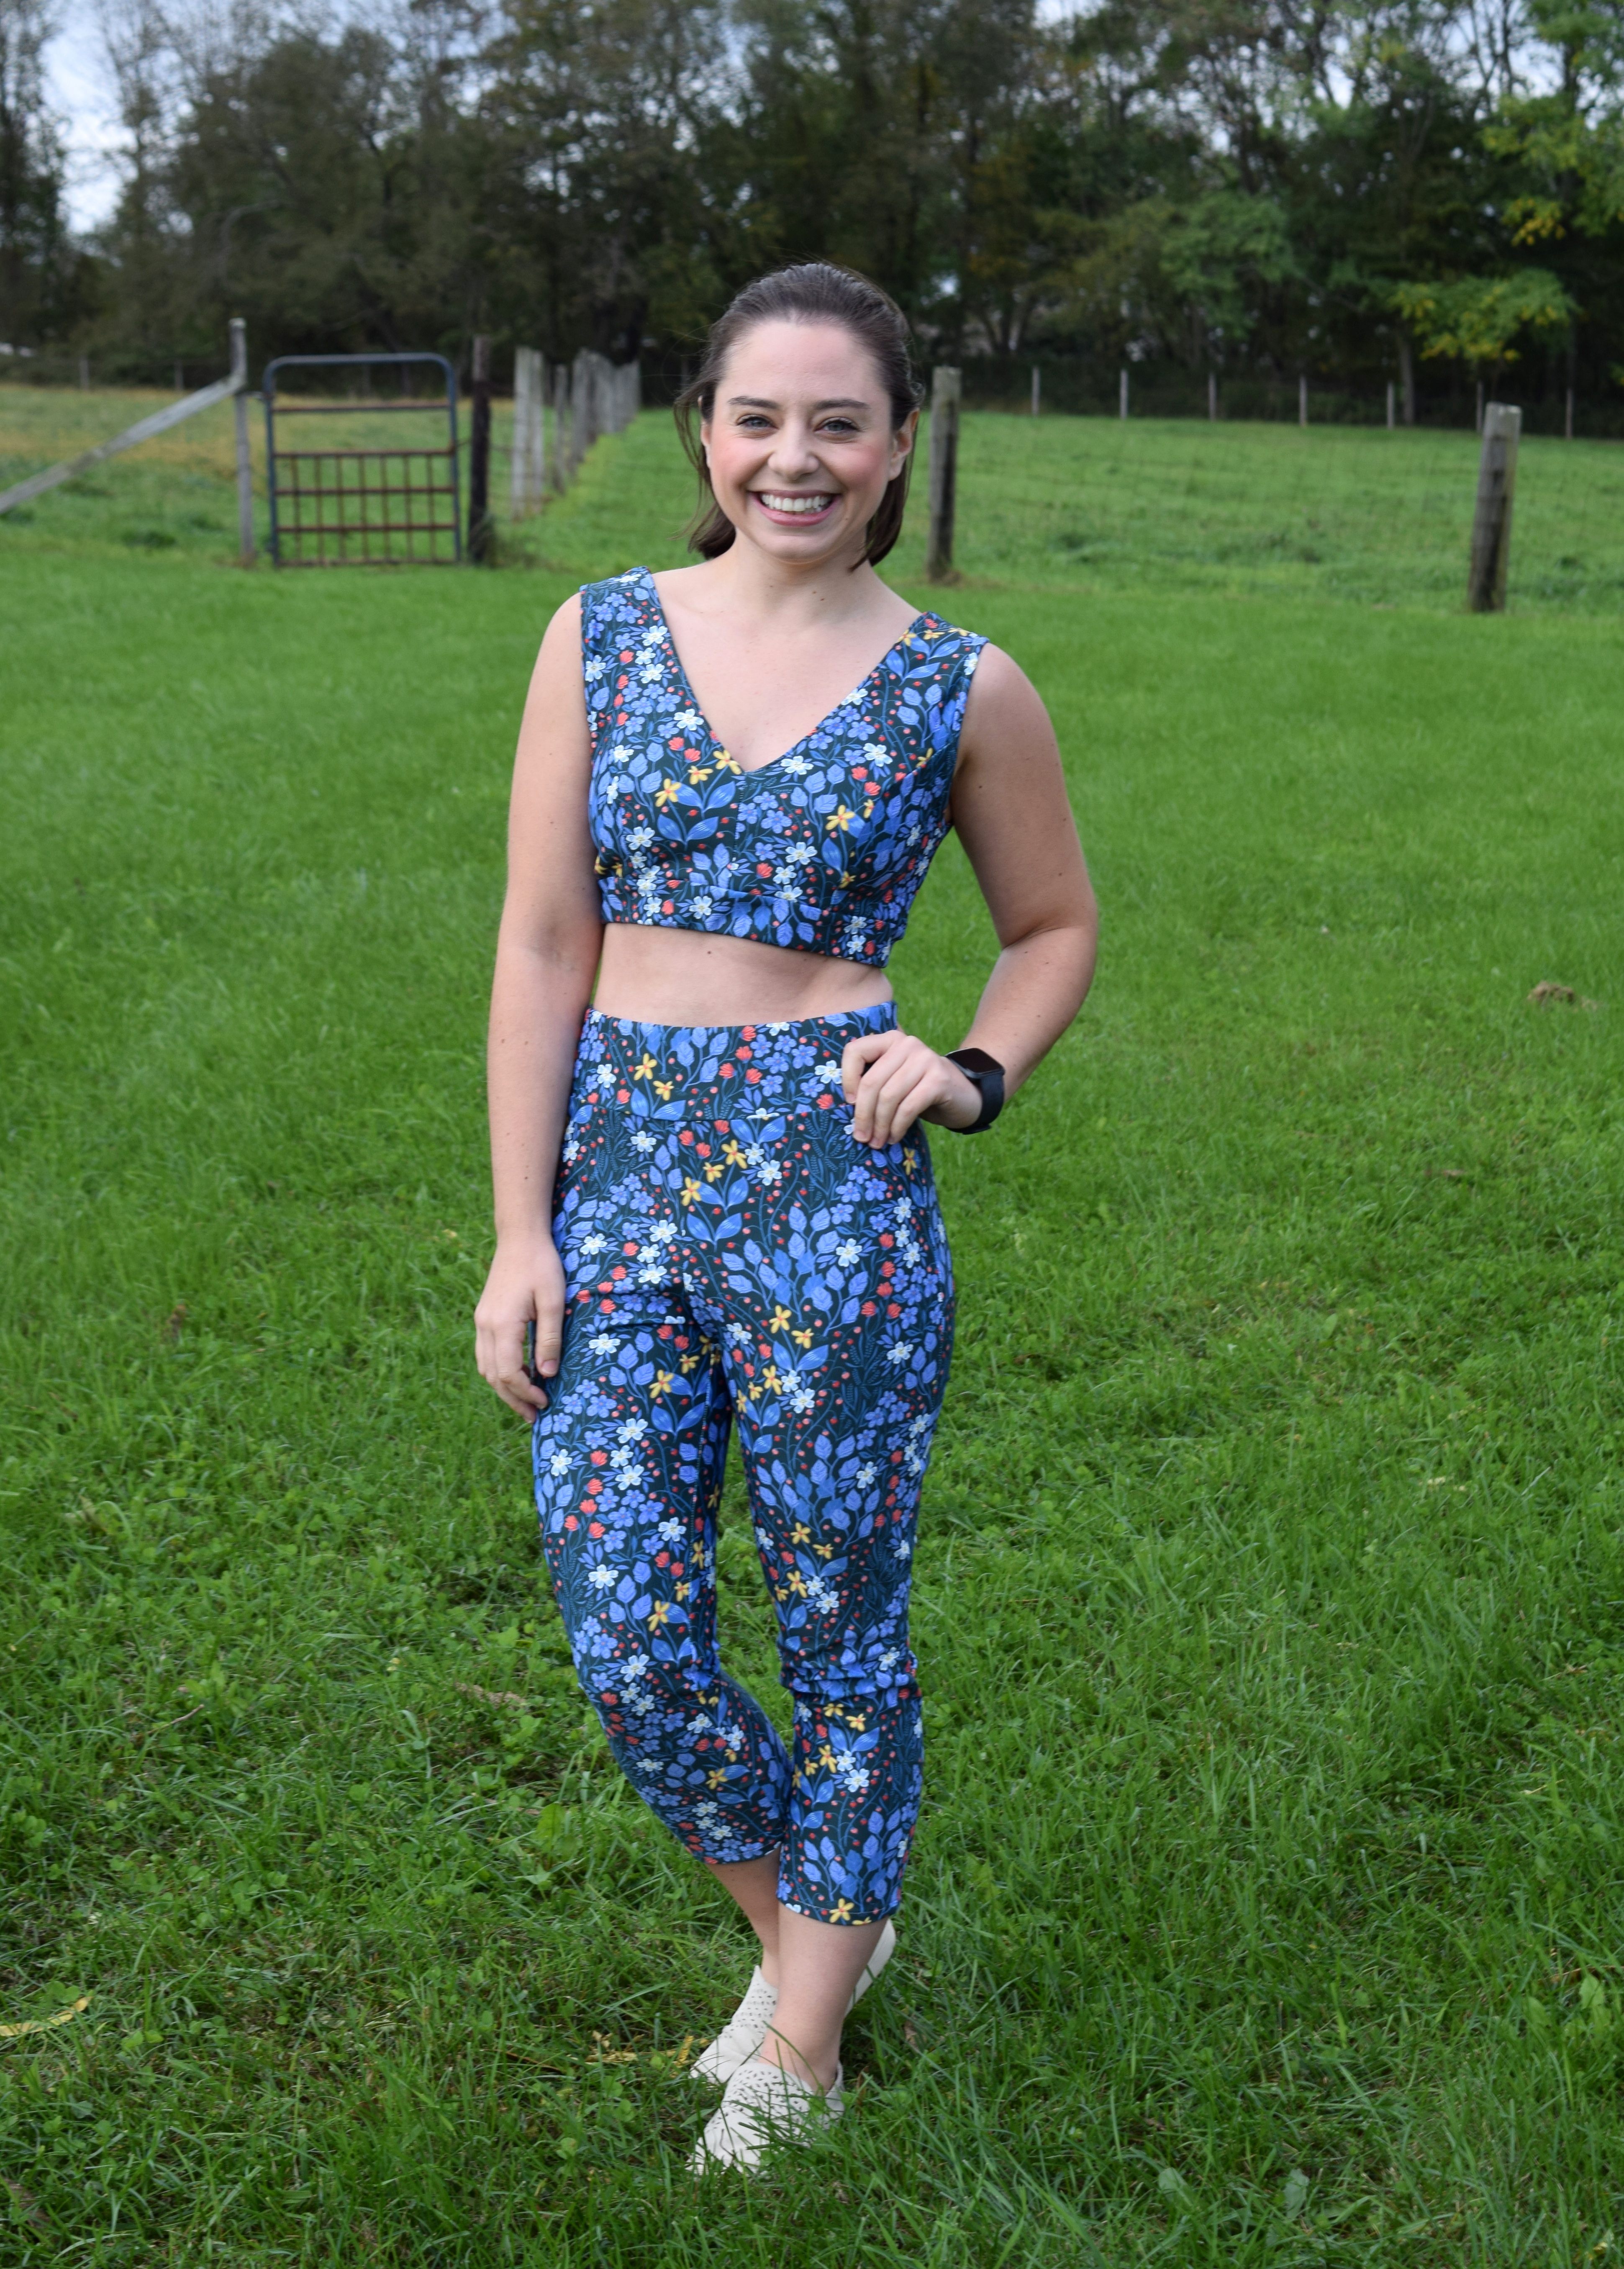 Pine Crest Fabric: Floral Workout Gear - Trish Stitched